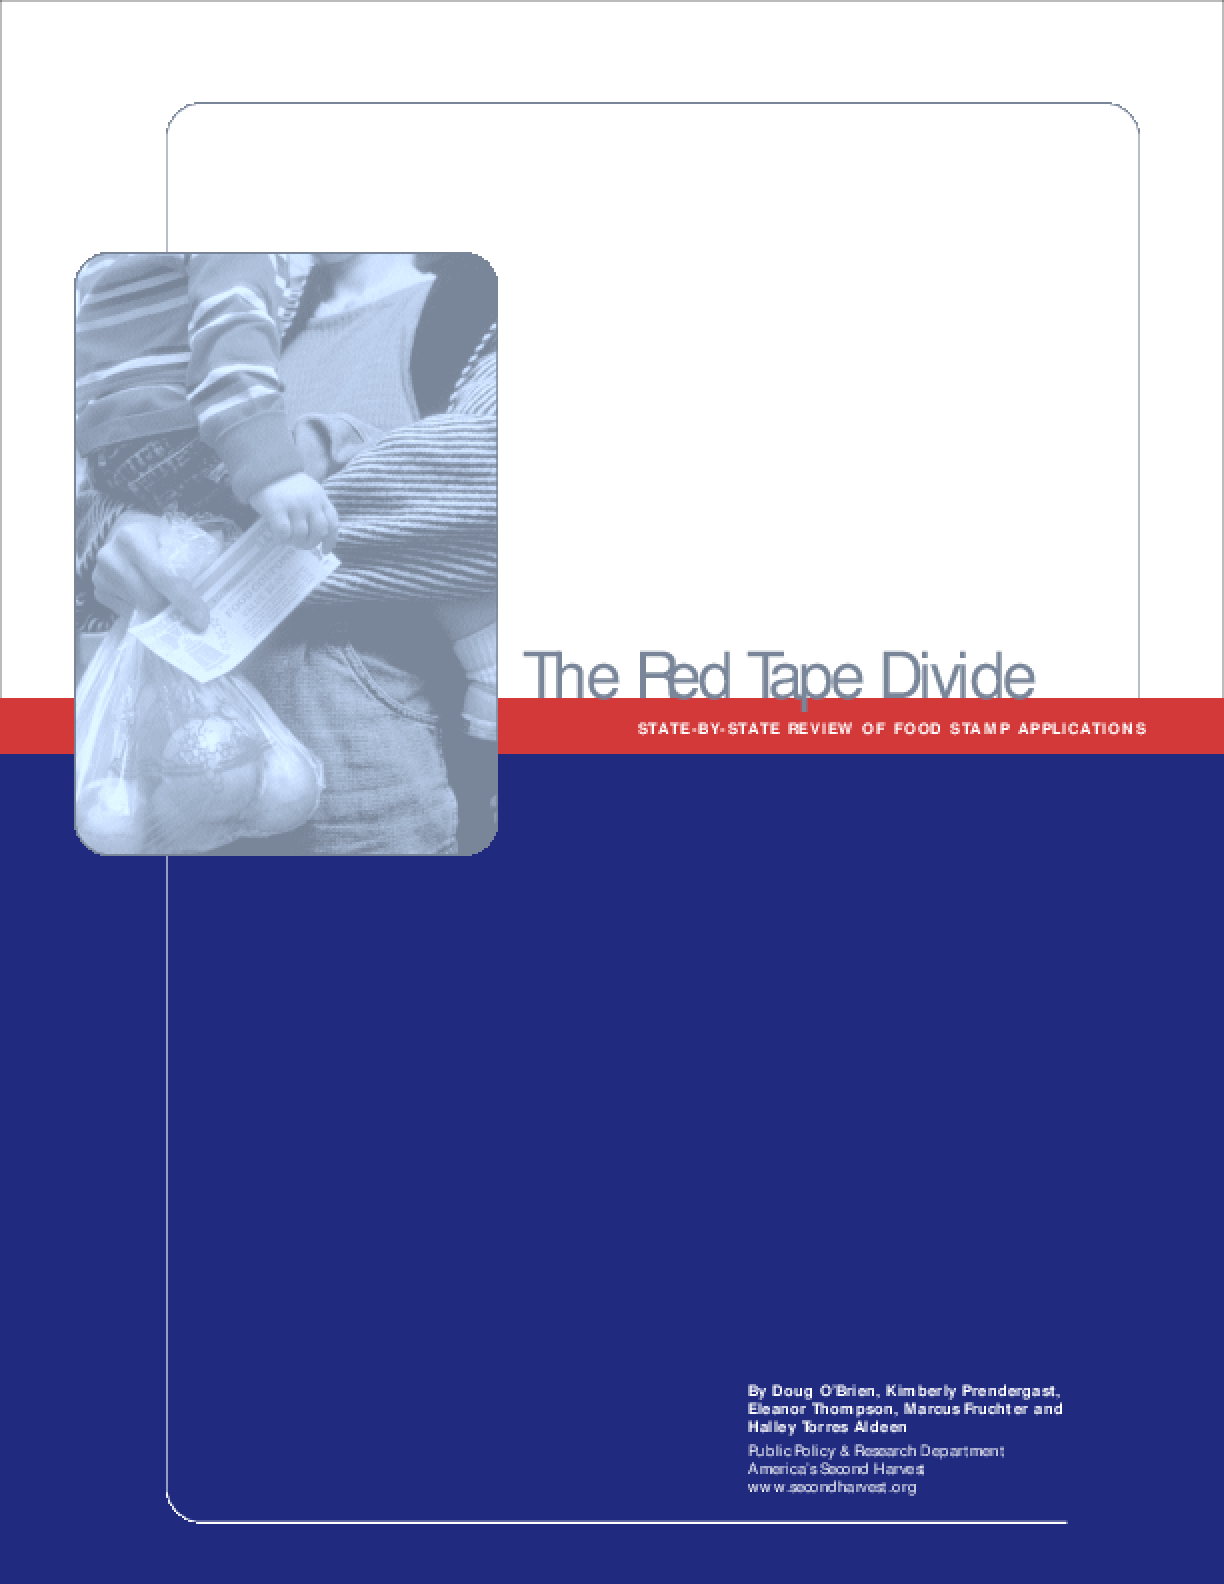 The Red Tape Divide: State-by-State Guide to Food Stamp Applications